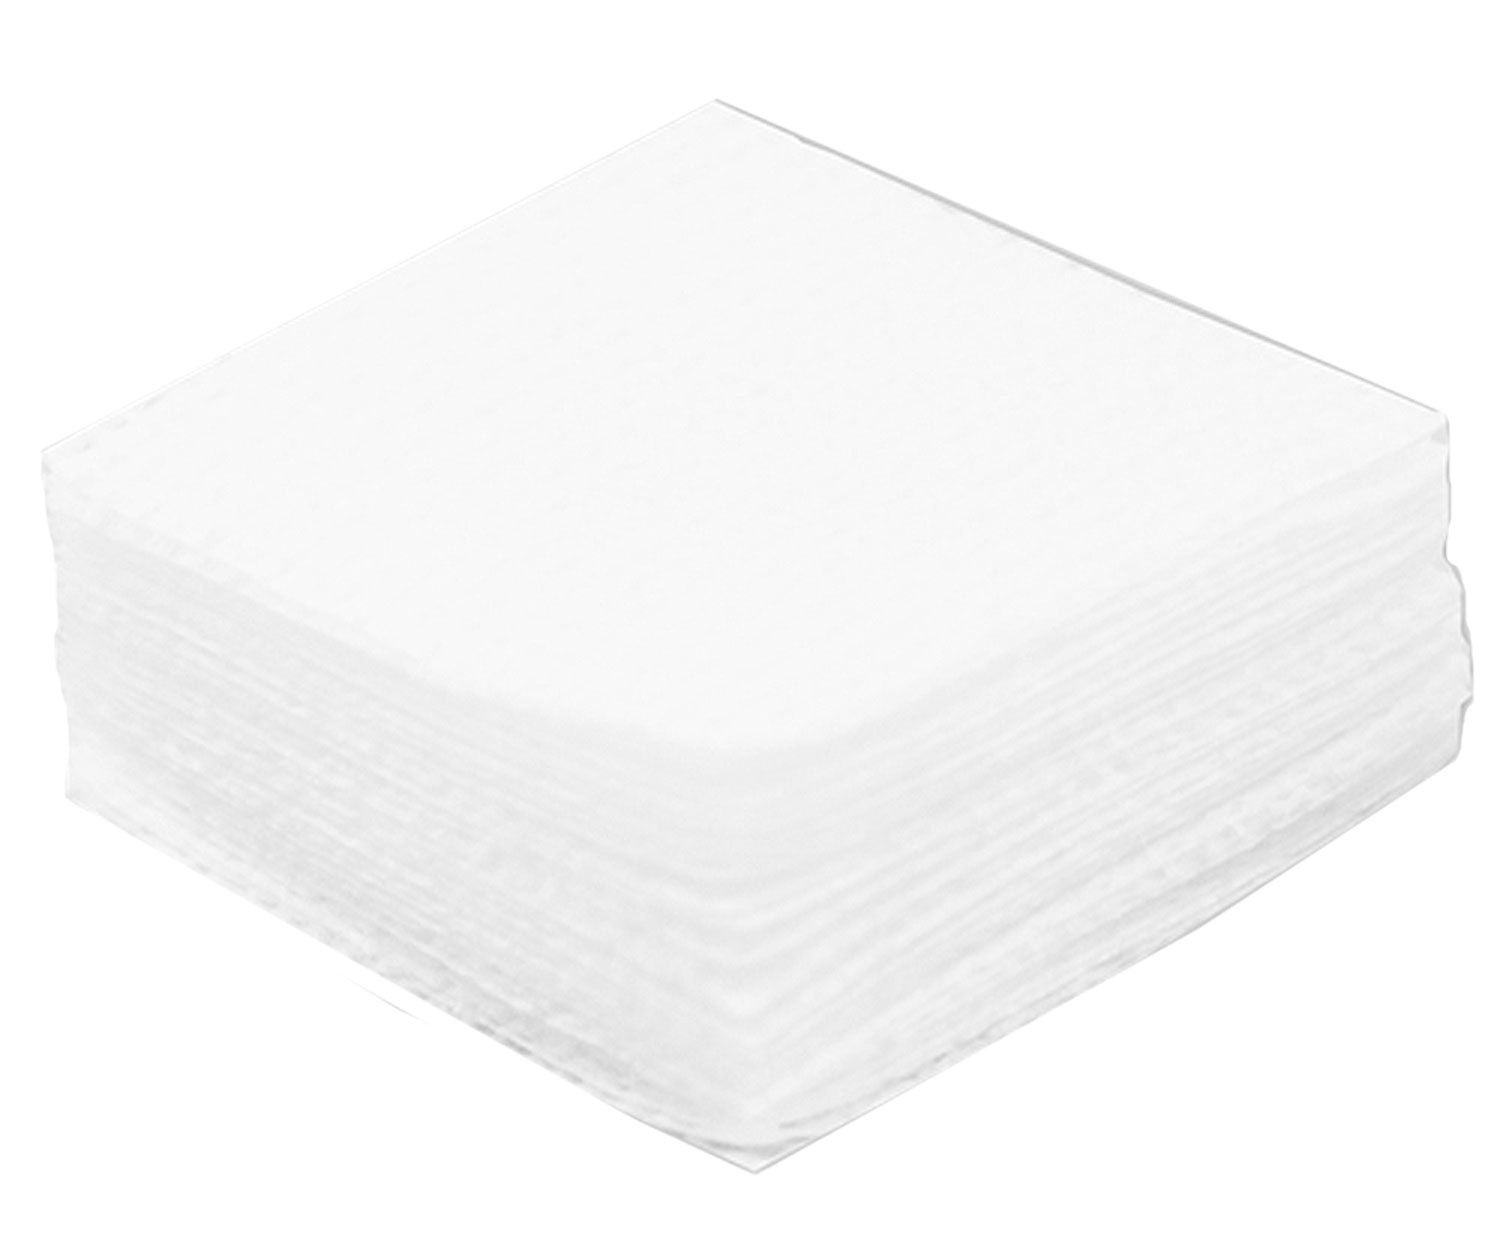 Birchwood Casey Cleaning Patch  <br>  Square 1.75 in. 7 mm.-.38 Cal. 750 pk.